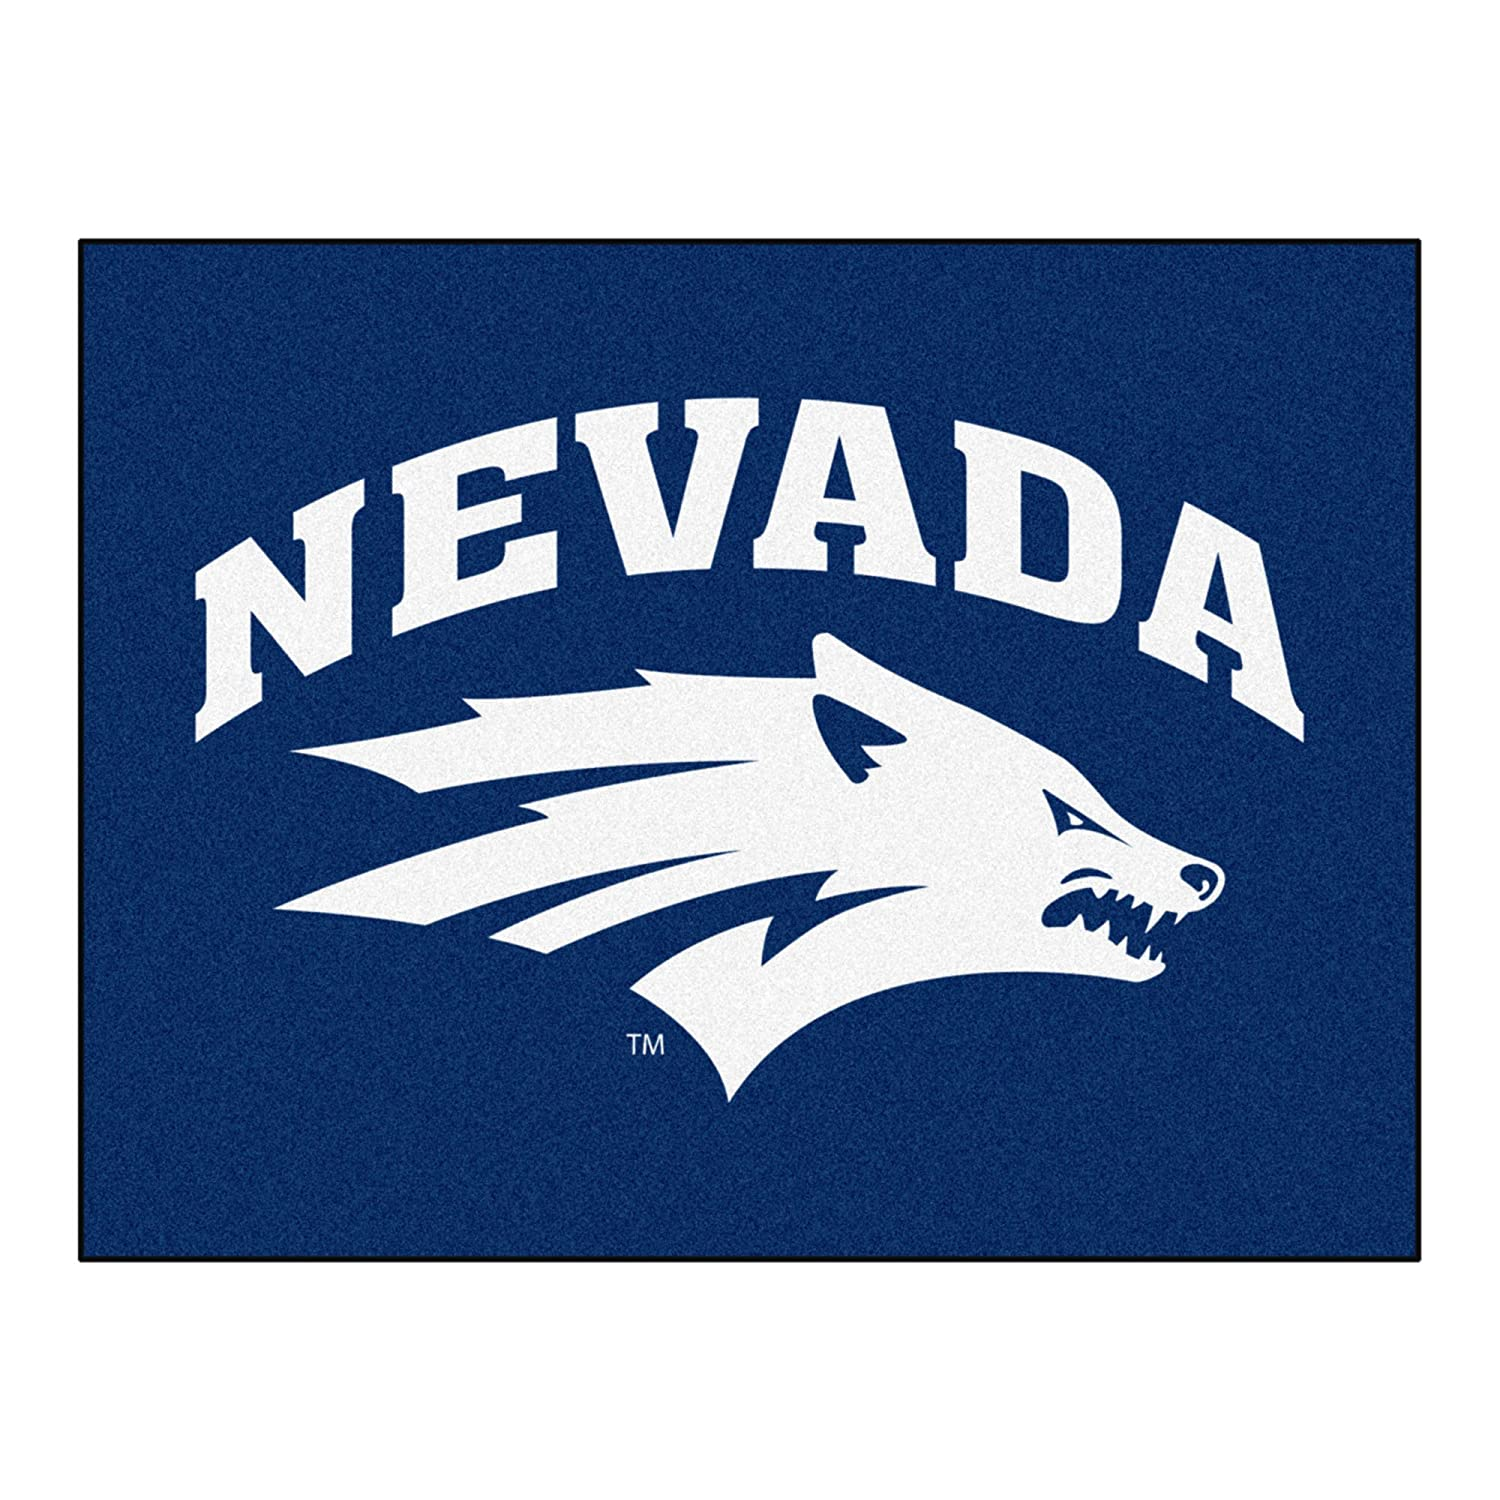 FANMATS NCAA University of Nevada Wolf Pack Nylon Face Basketball Rug 1003